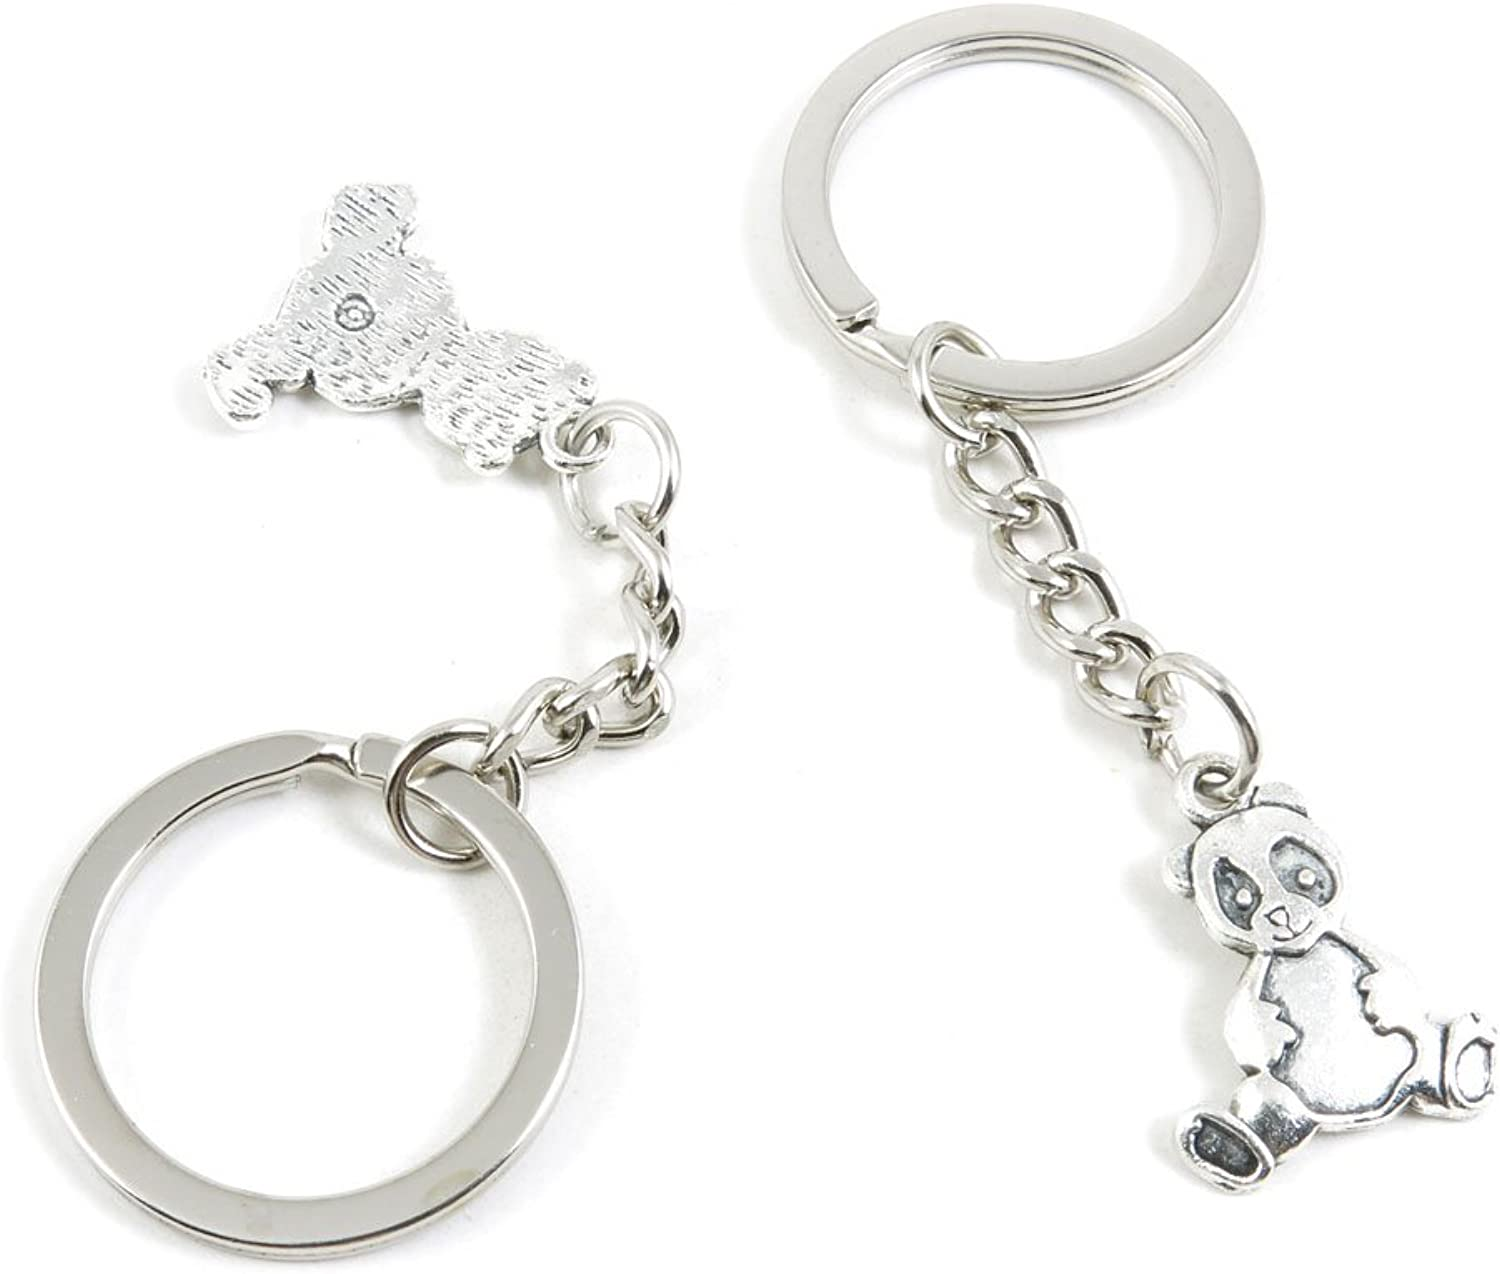 100 Pieces Keychain Keyring Door Car Key Chain Ring Tag Charms Bulk Supply Jewelry Making Clasp Findings A8KW0Z Panda